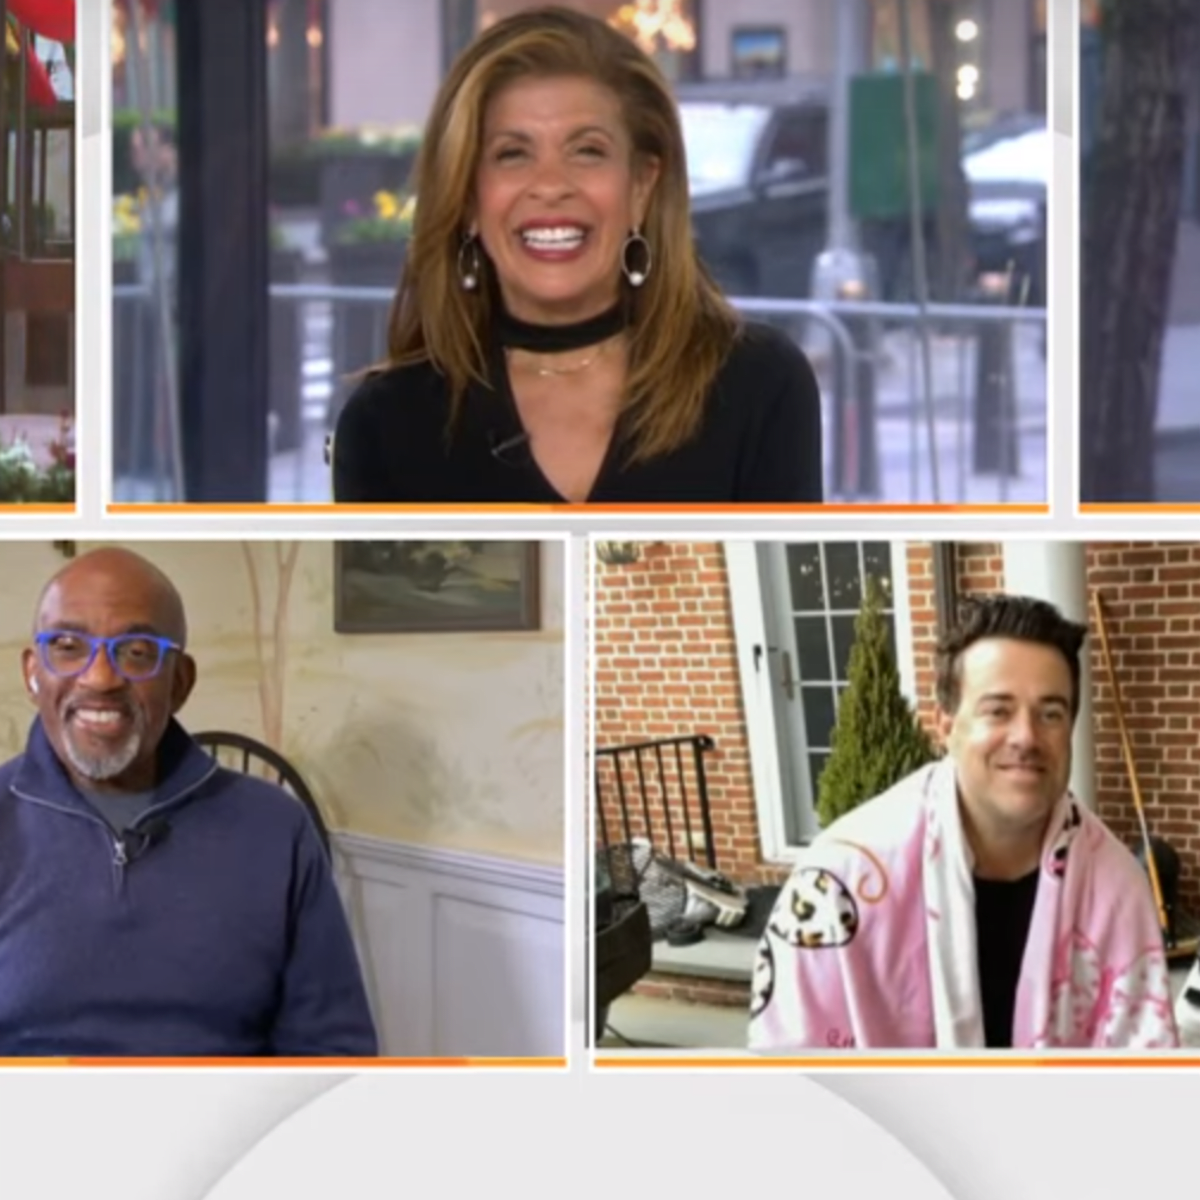 Watch Carson Daly Gives Himself A Haircut Live On The Today Show